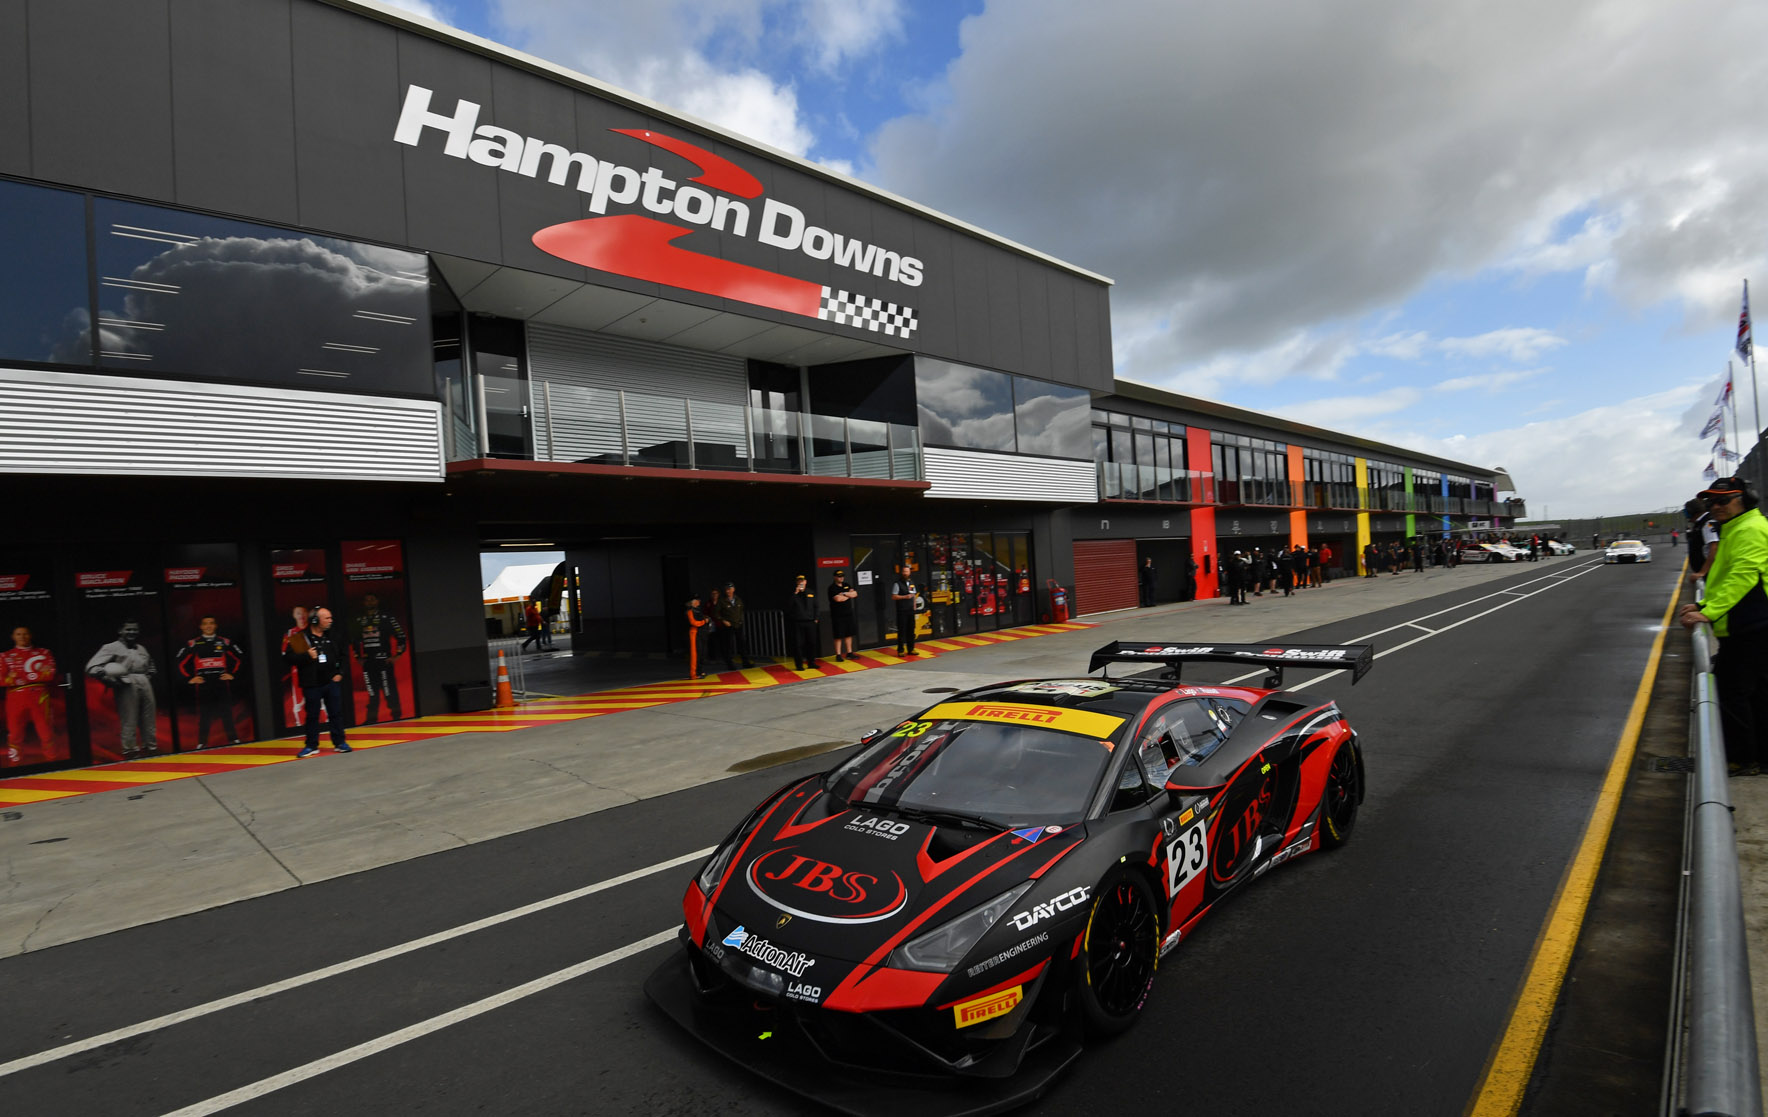 New Naming Rights Sponsor for Hampton Downs 500